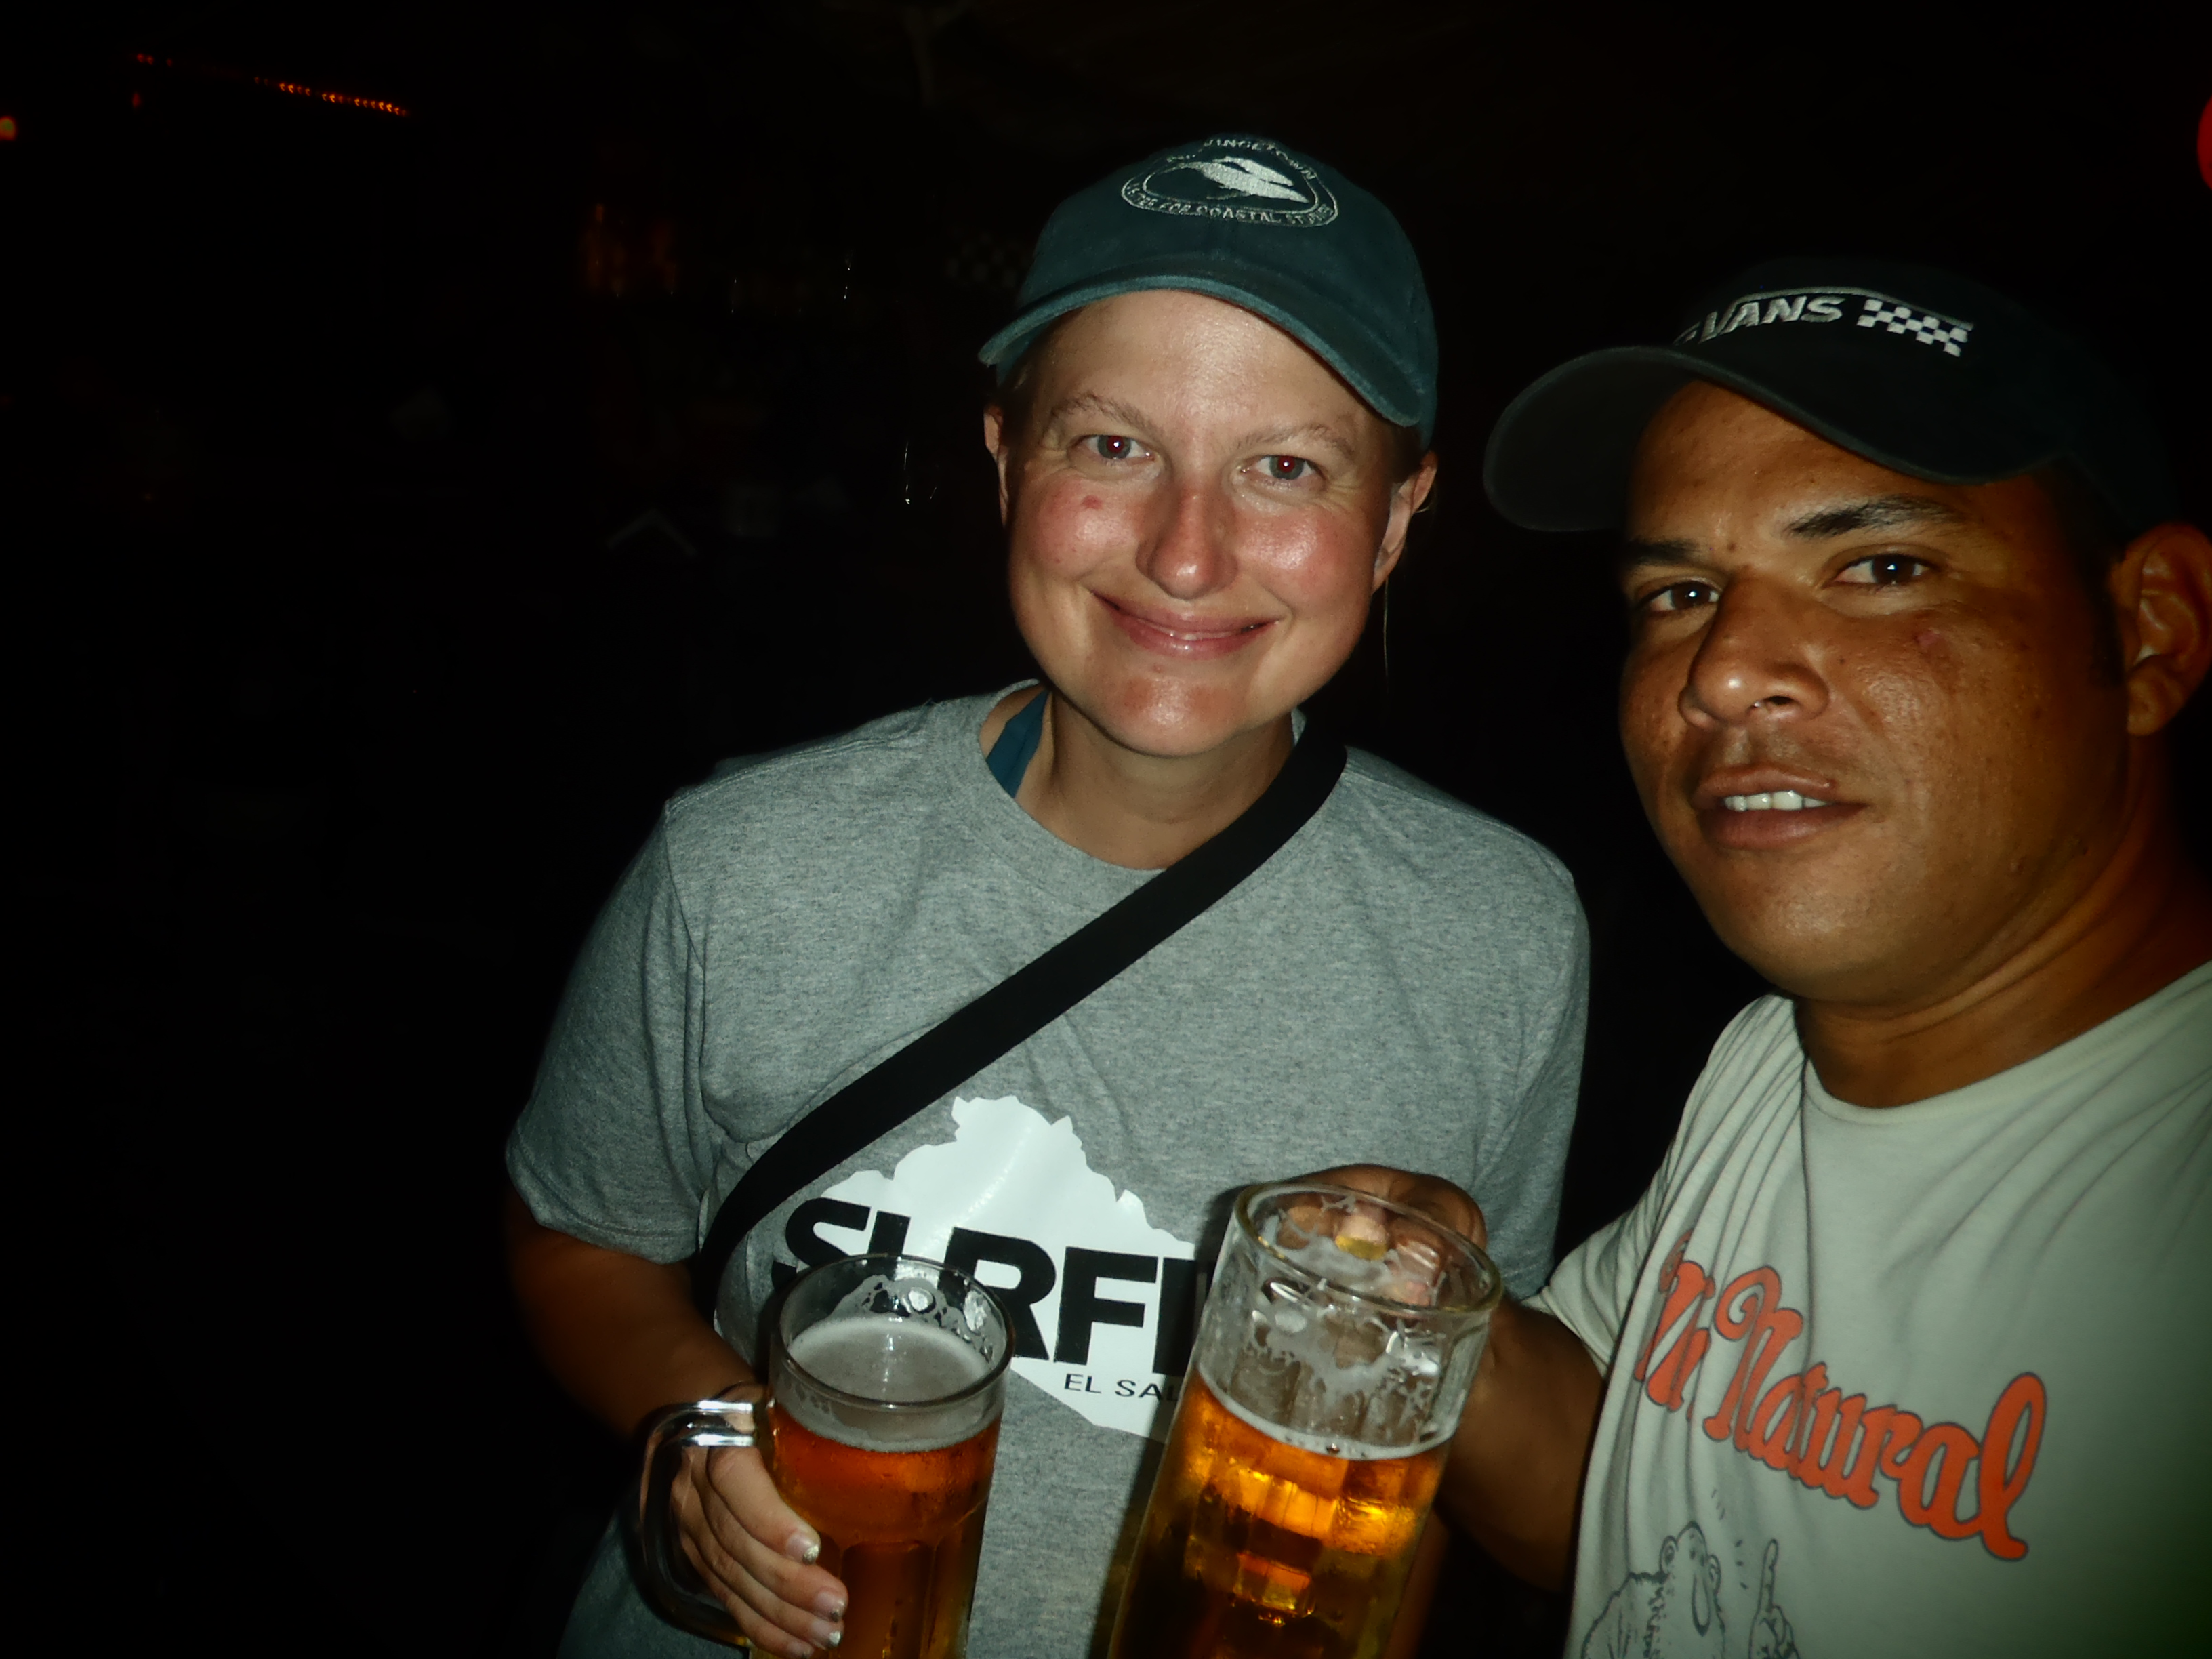 Proper Night Out; El Tunco, El Salvador; 2013